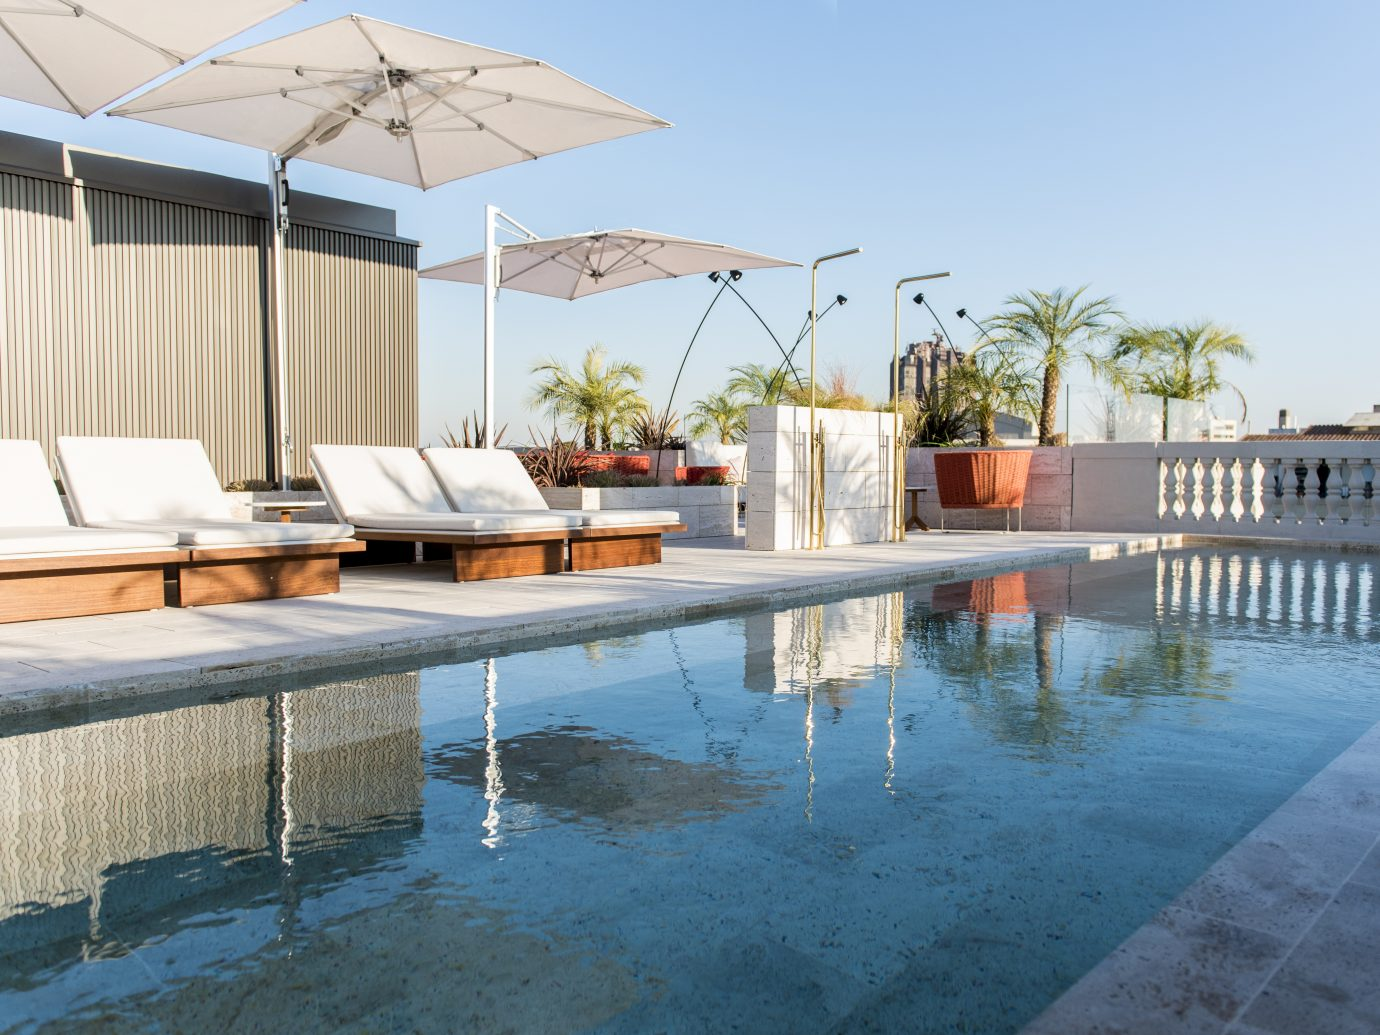 Azimuth Pool and Rooftop Bar, Almanac Hotel, Barcelona